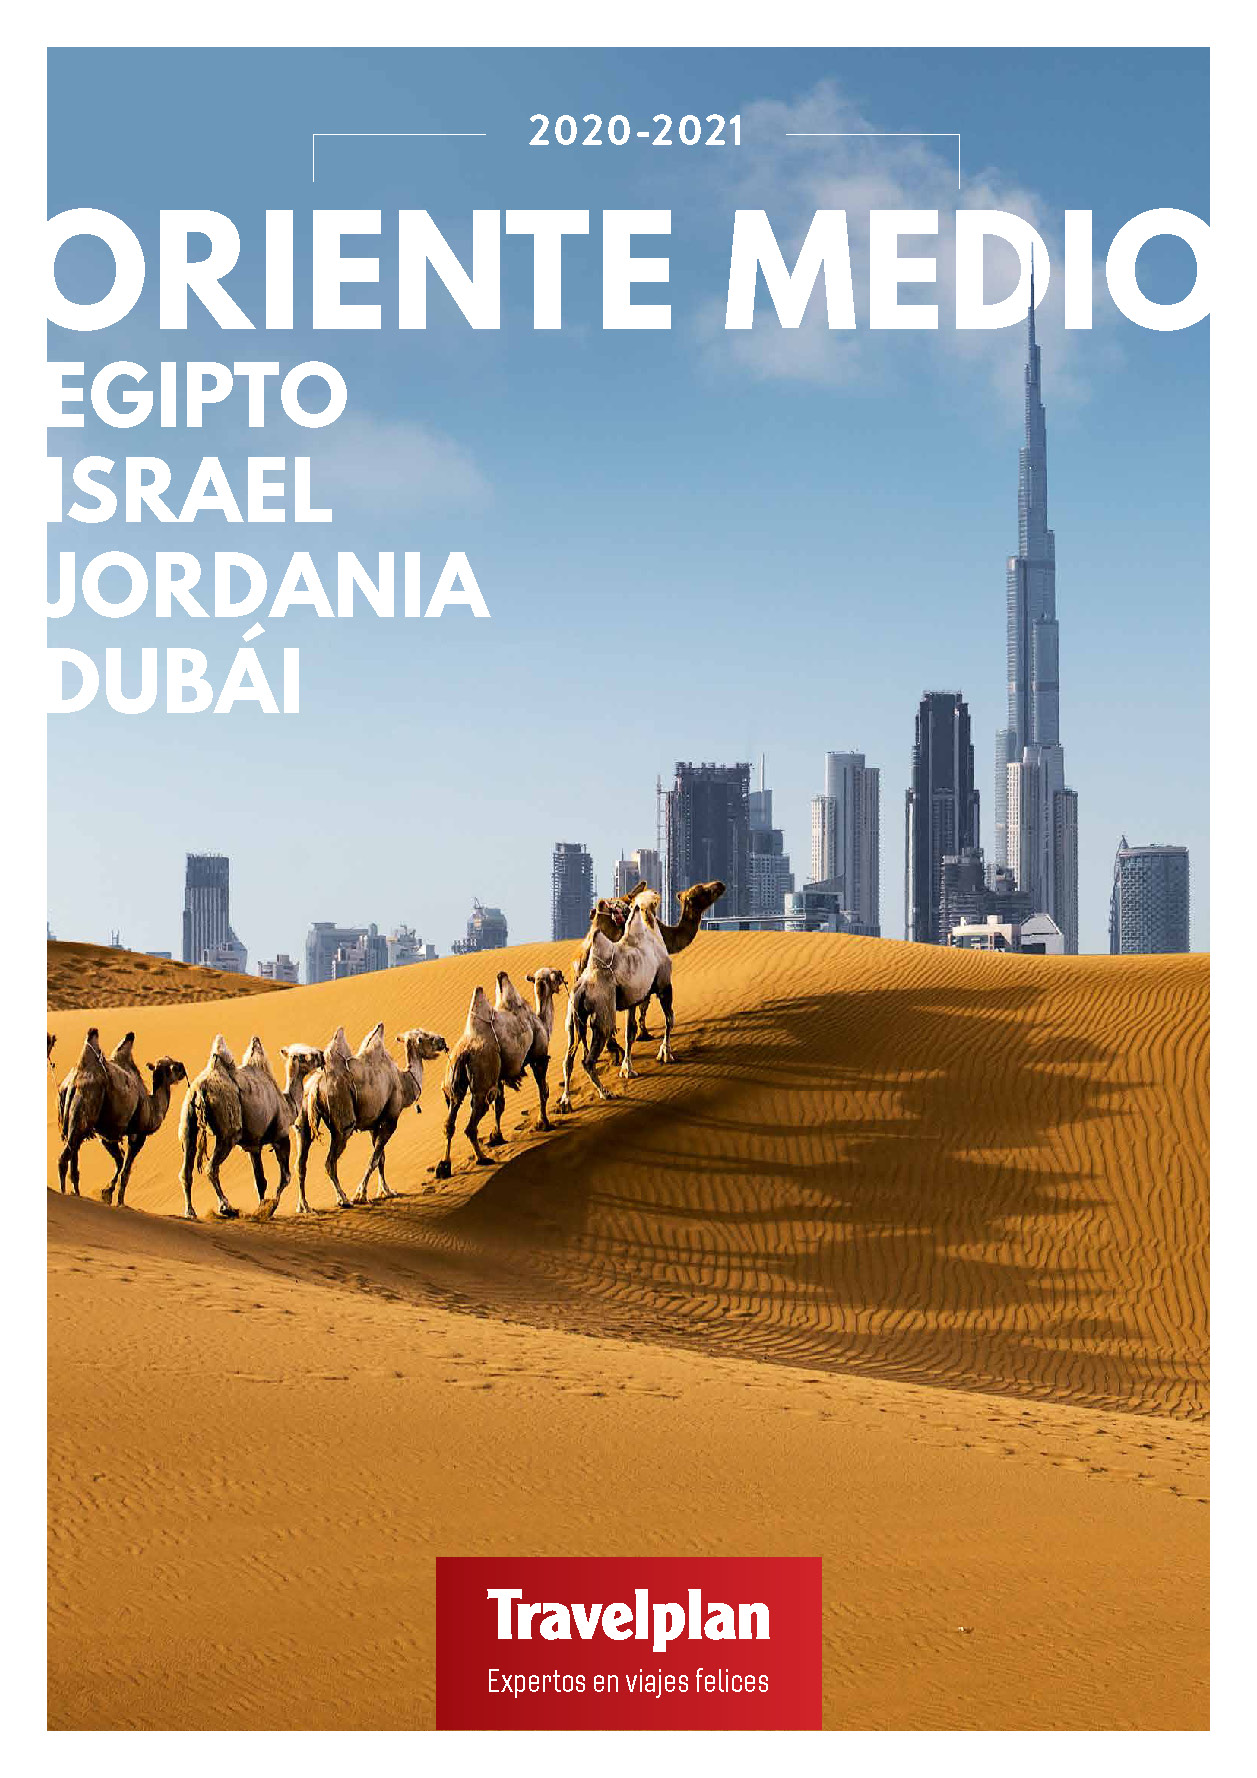 Catalogo Travelplan Oriente Medio 2020-2021